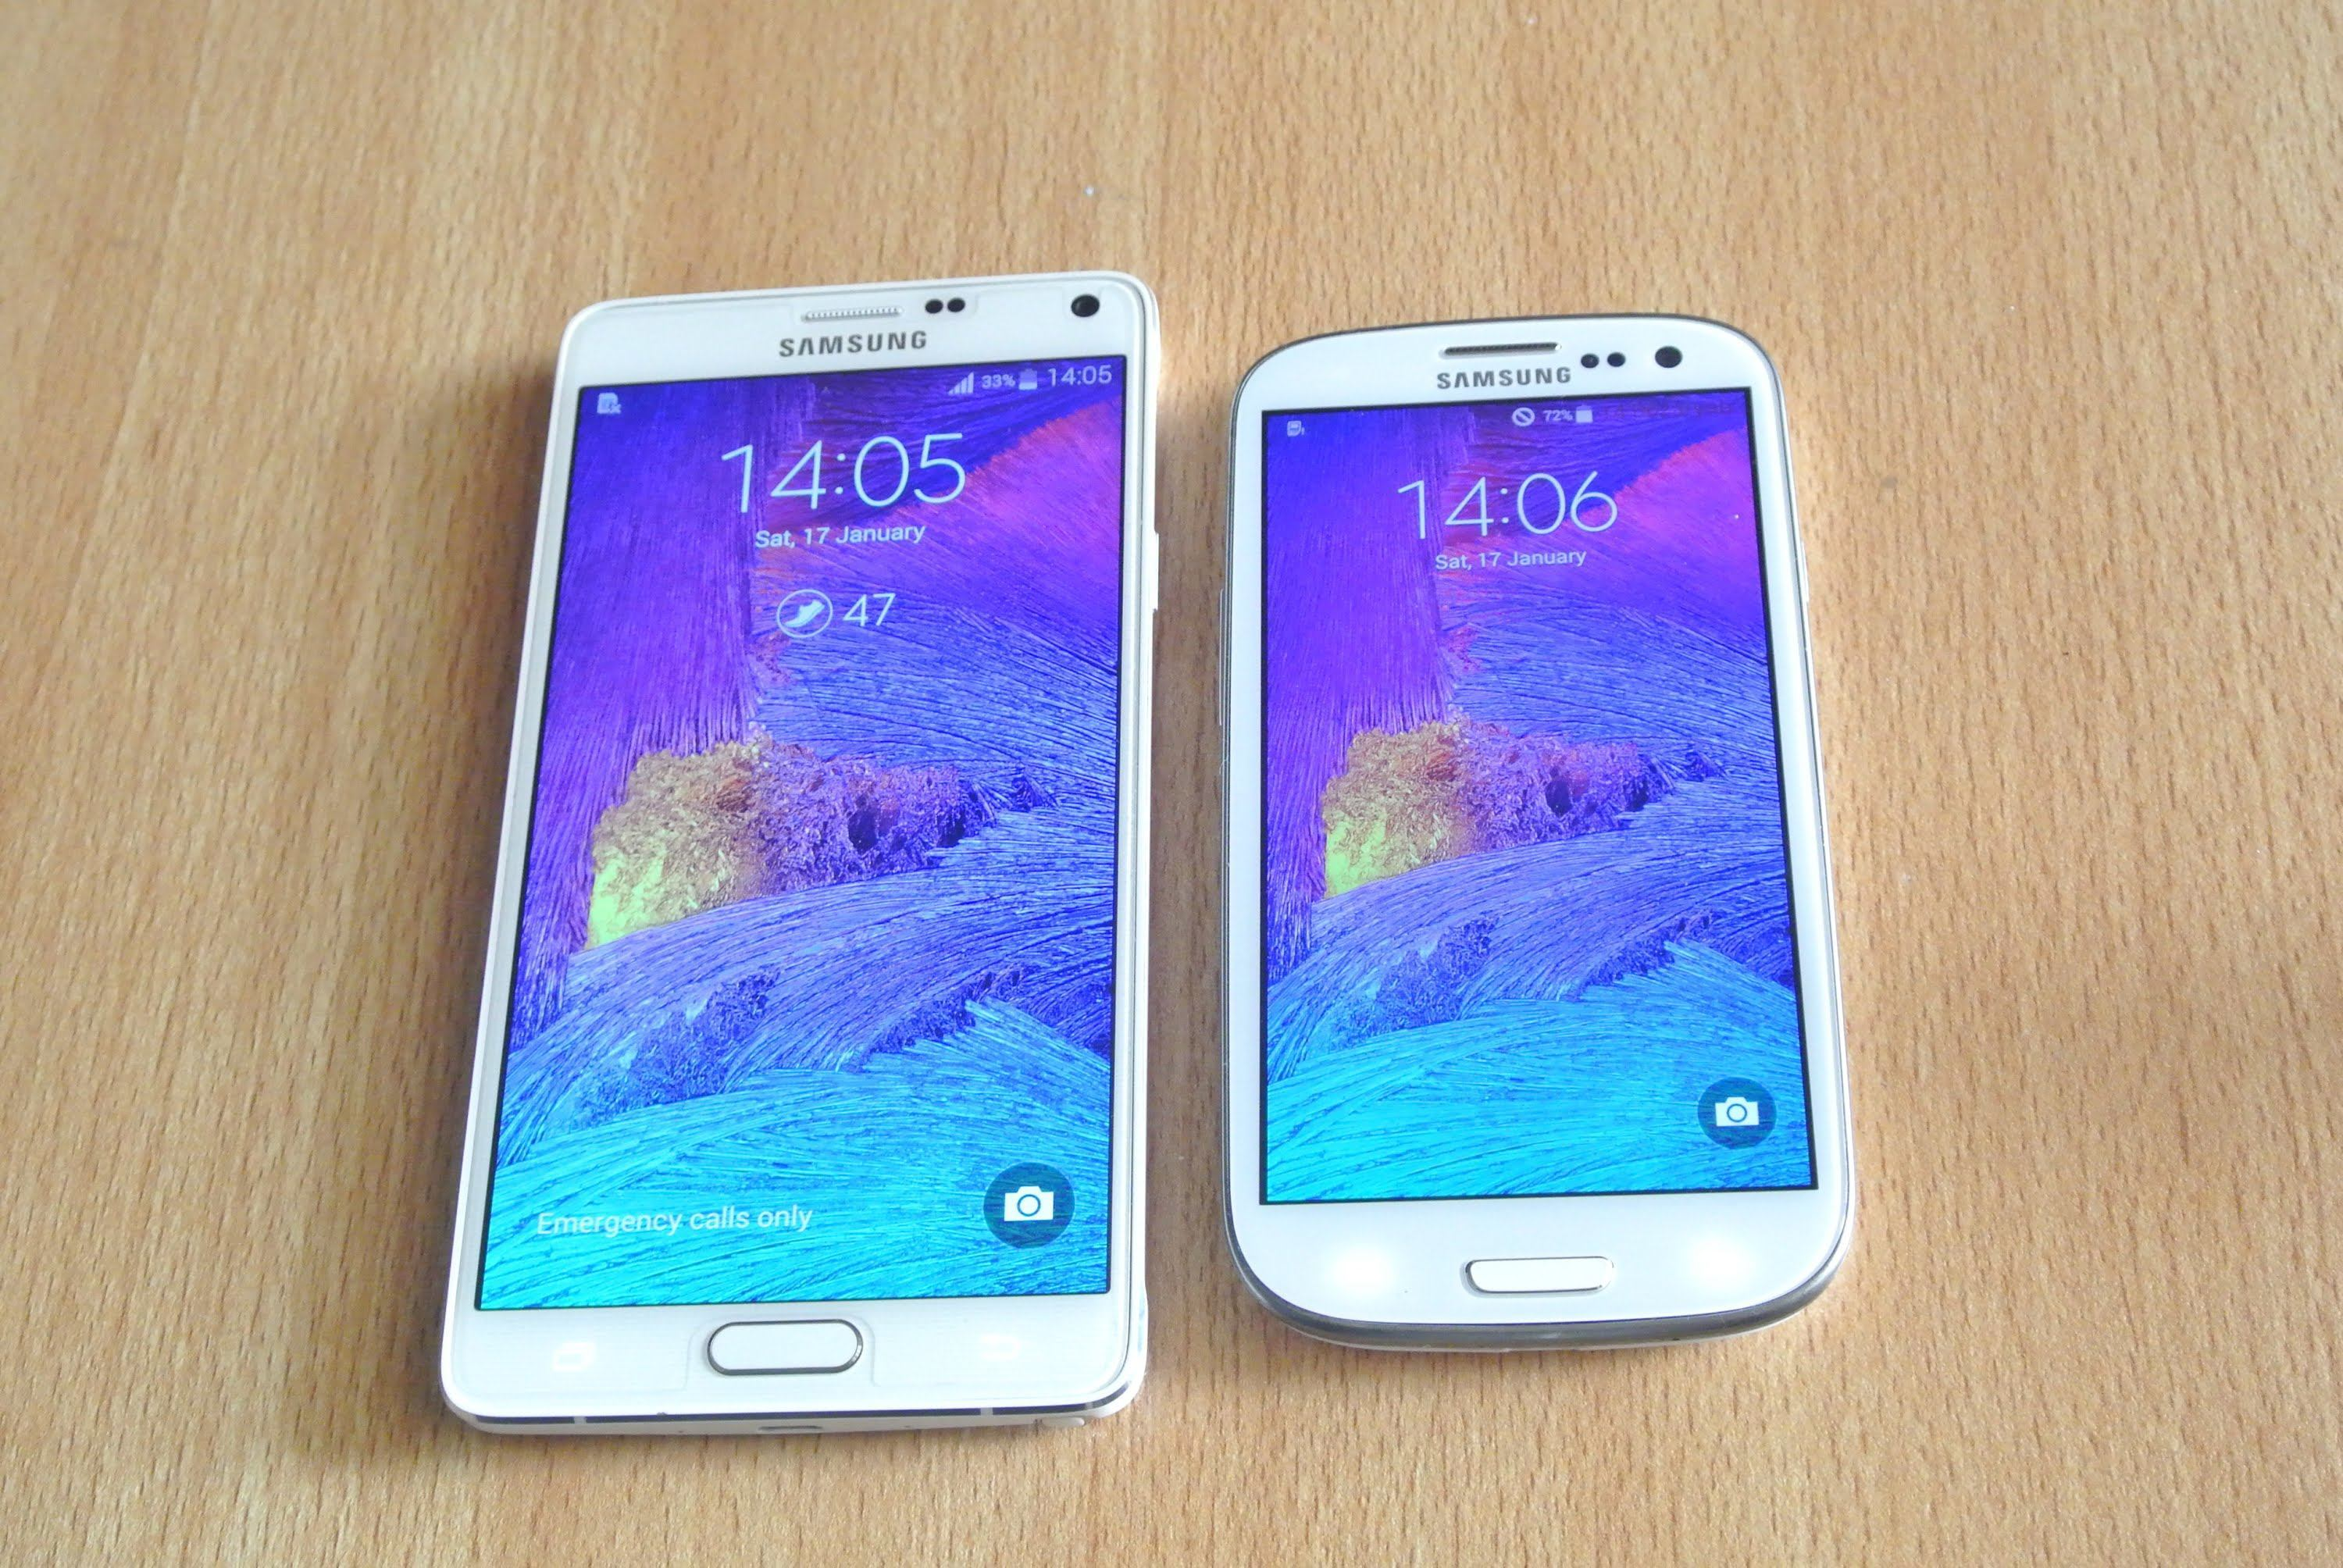 Samsung Galaxy Note 4 VS Galaxy S3